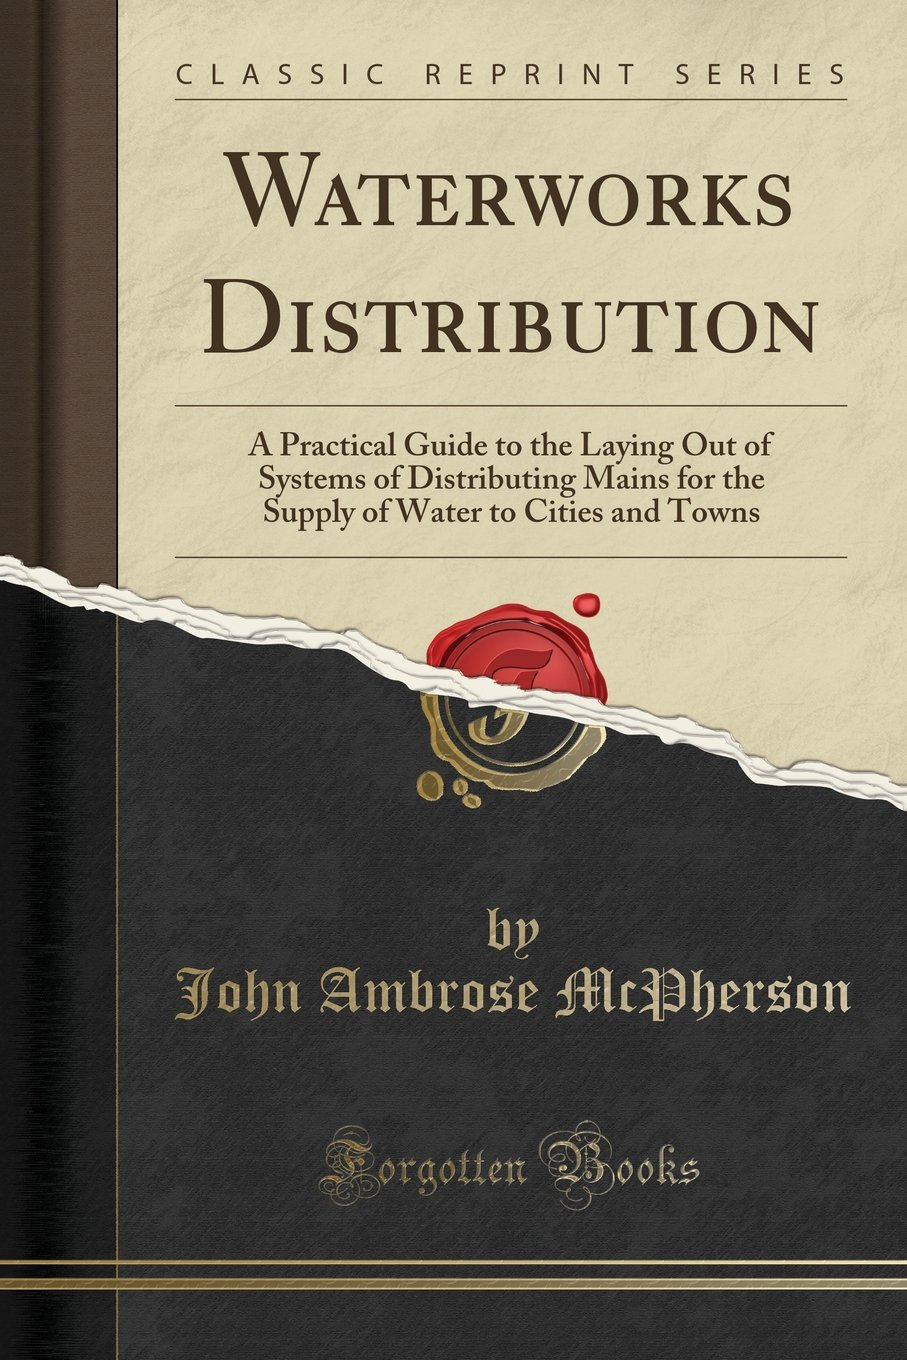 Download Waterworks Distribution: A Practical Guide to the Laying Out of Systems of Distributing Mains for the Supply of Water to Cities and Towns (Classic Reprint) pdf